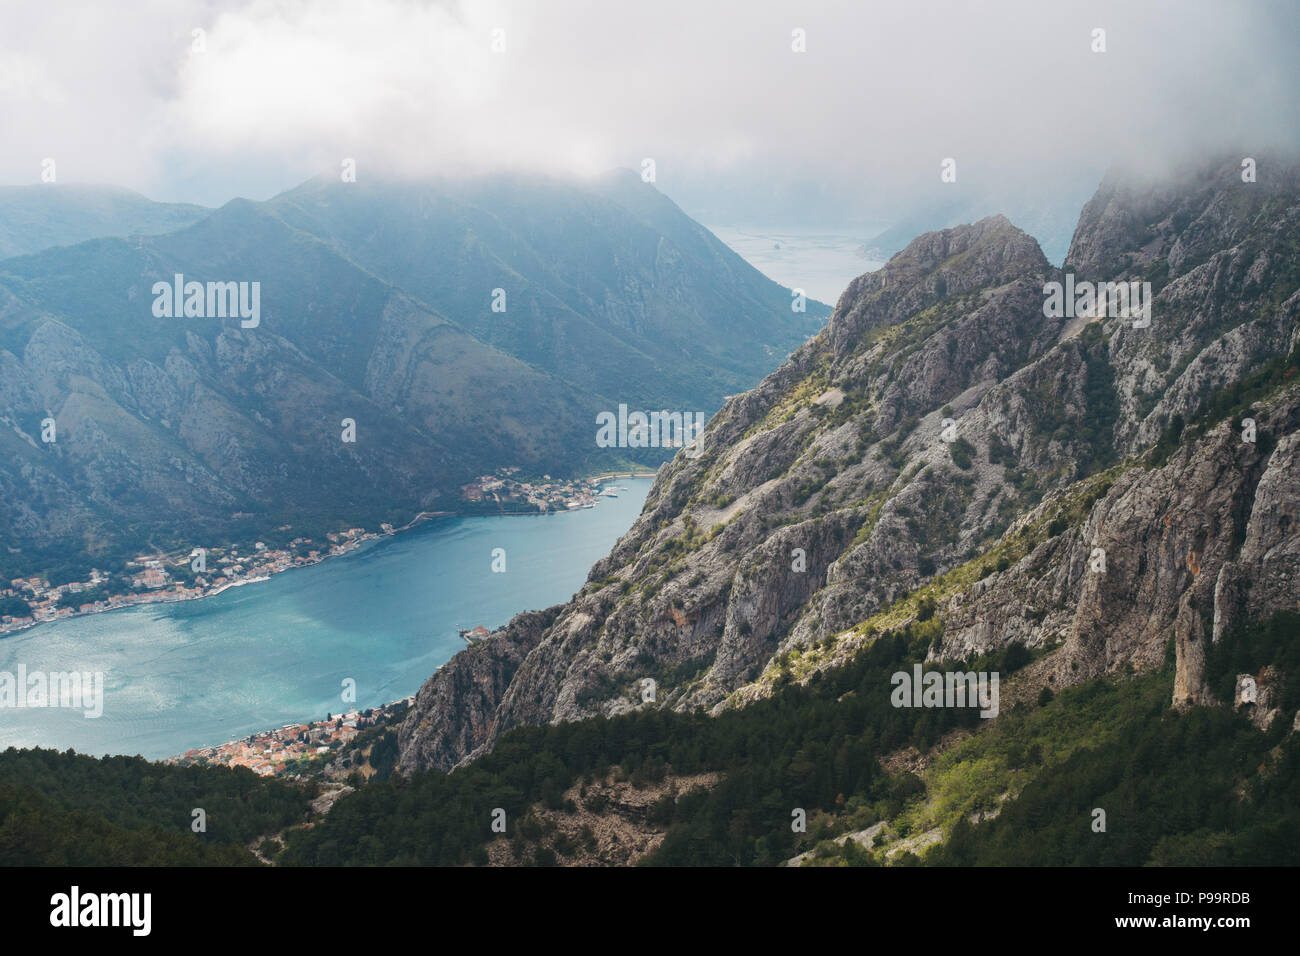 the view of the inlet from the road down into Kotor, Montenegro Stock Photo